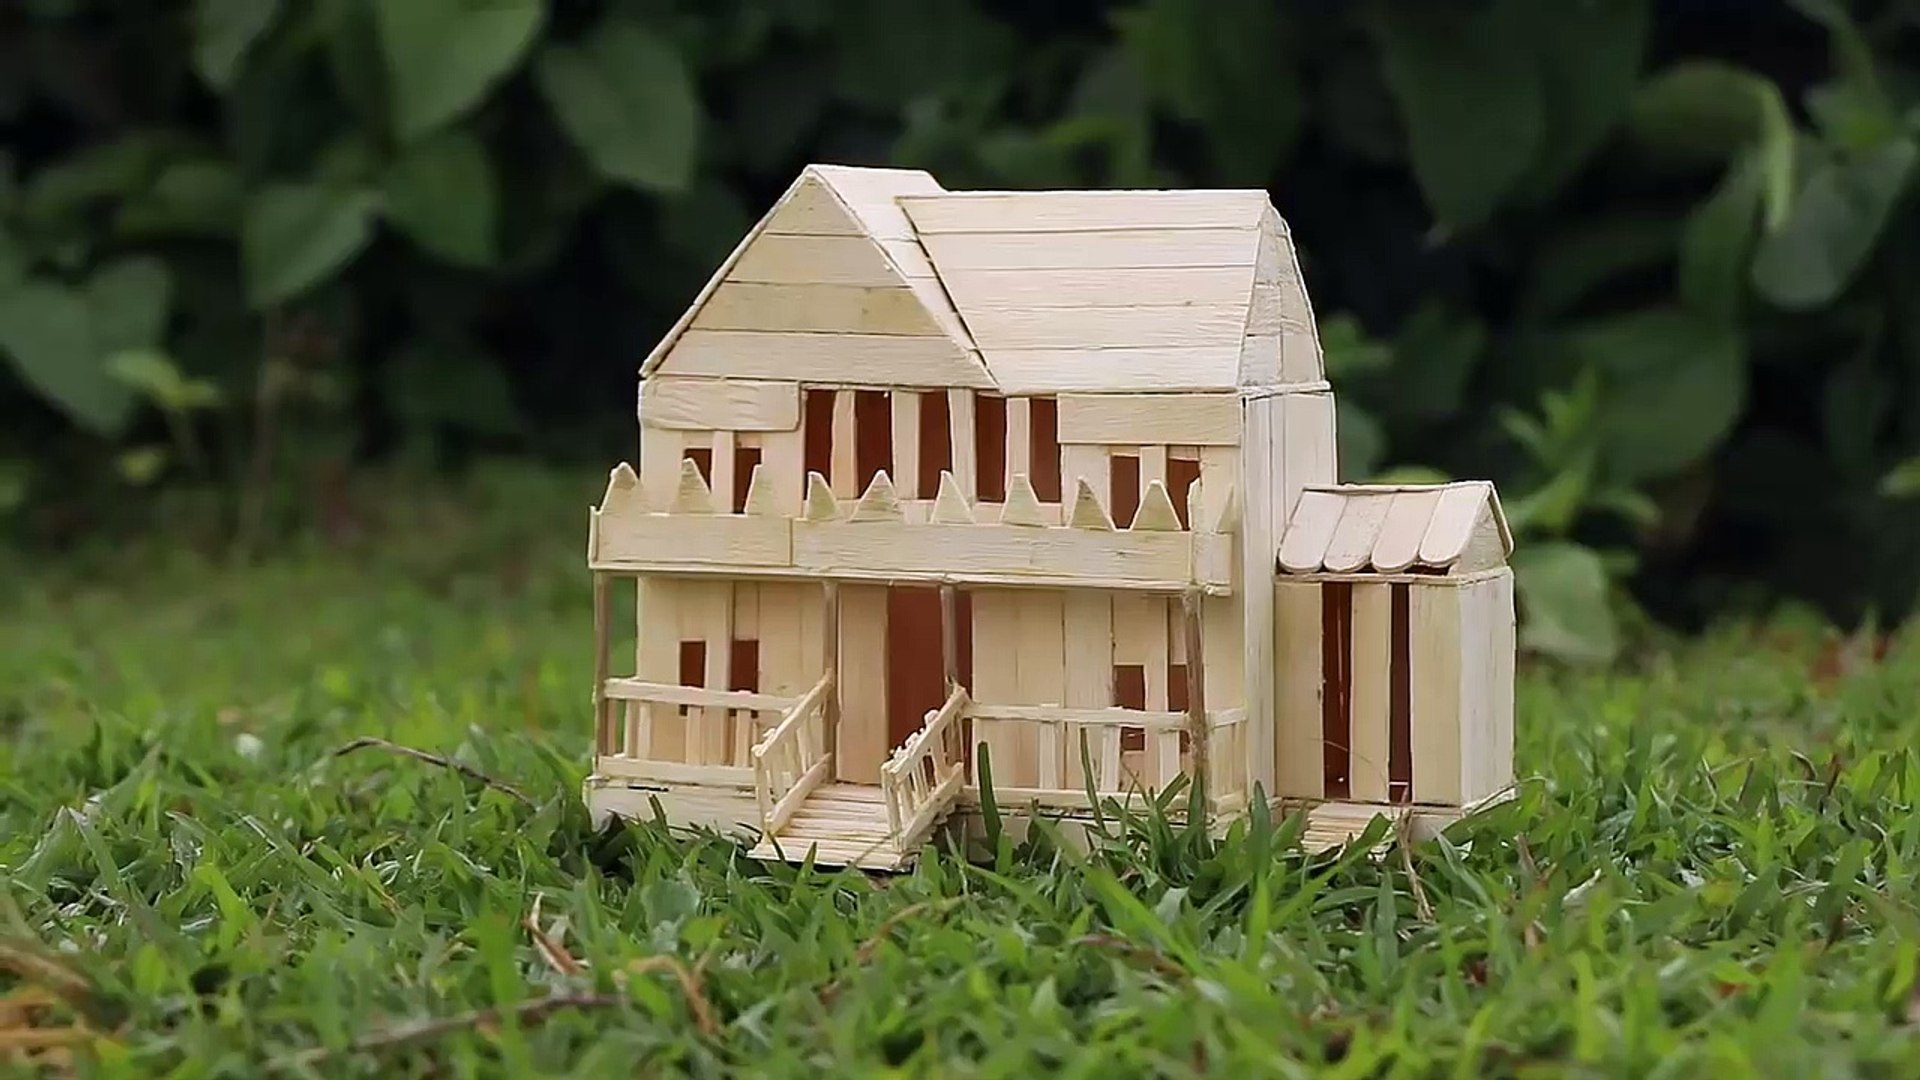 How To Make A Popsicle Stick House Very Easy Icecream Stick Crafts